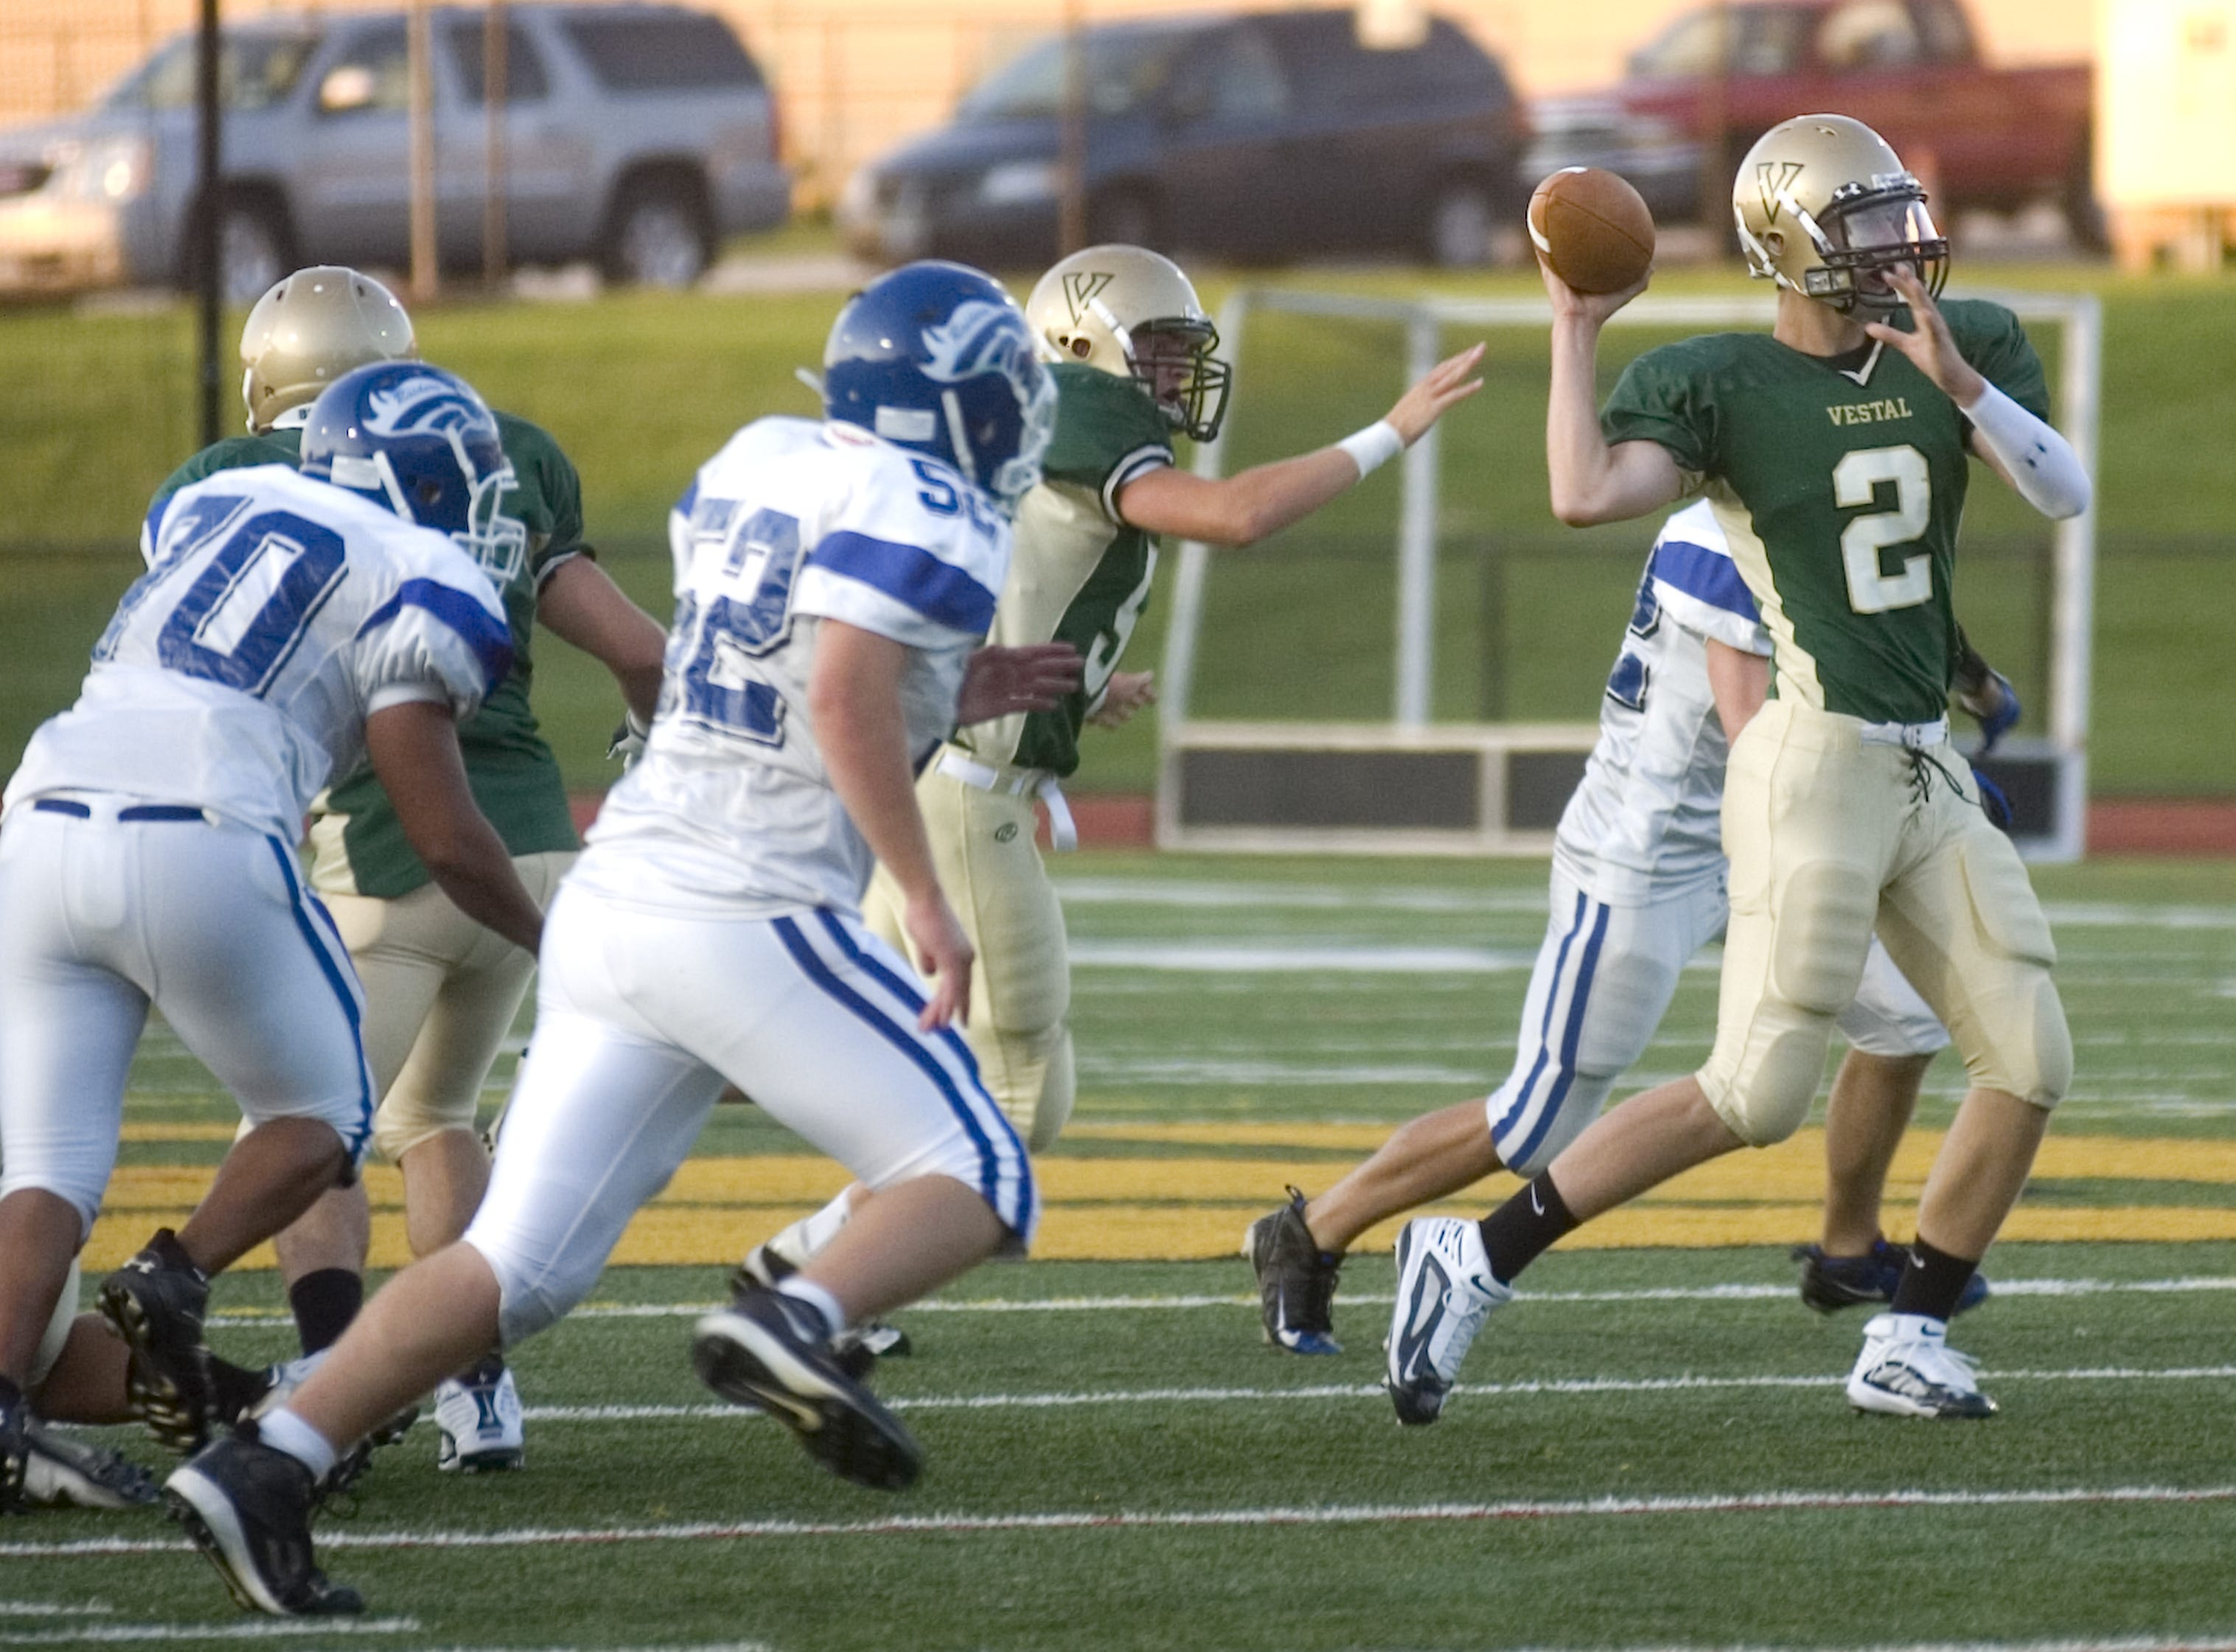 In 2009, Vestal quarterback Caleb Scepaniak, center, looks to pass at Vestal's Dick Hoover Stadium.